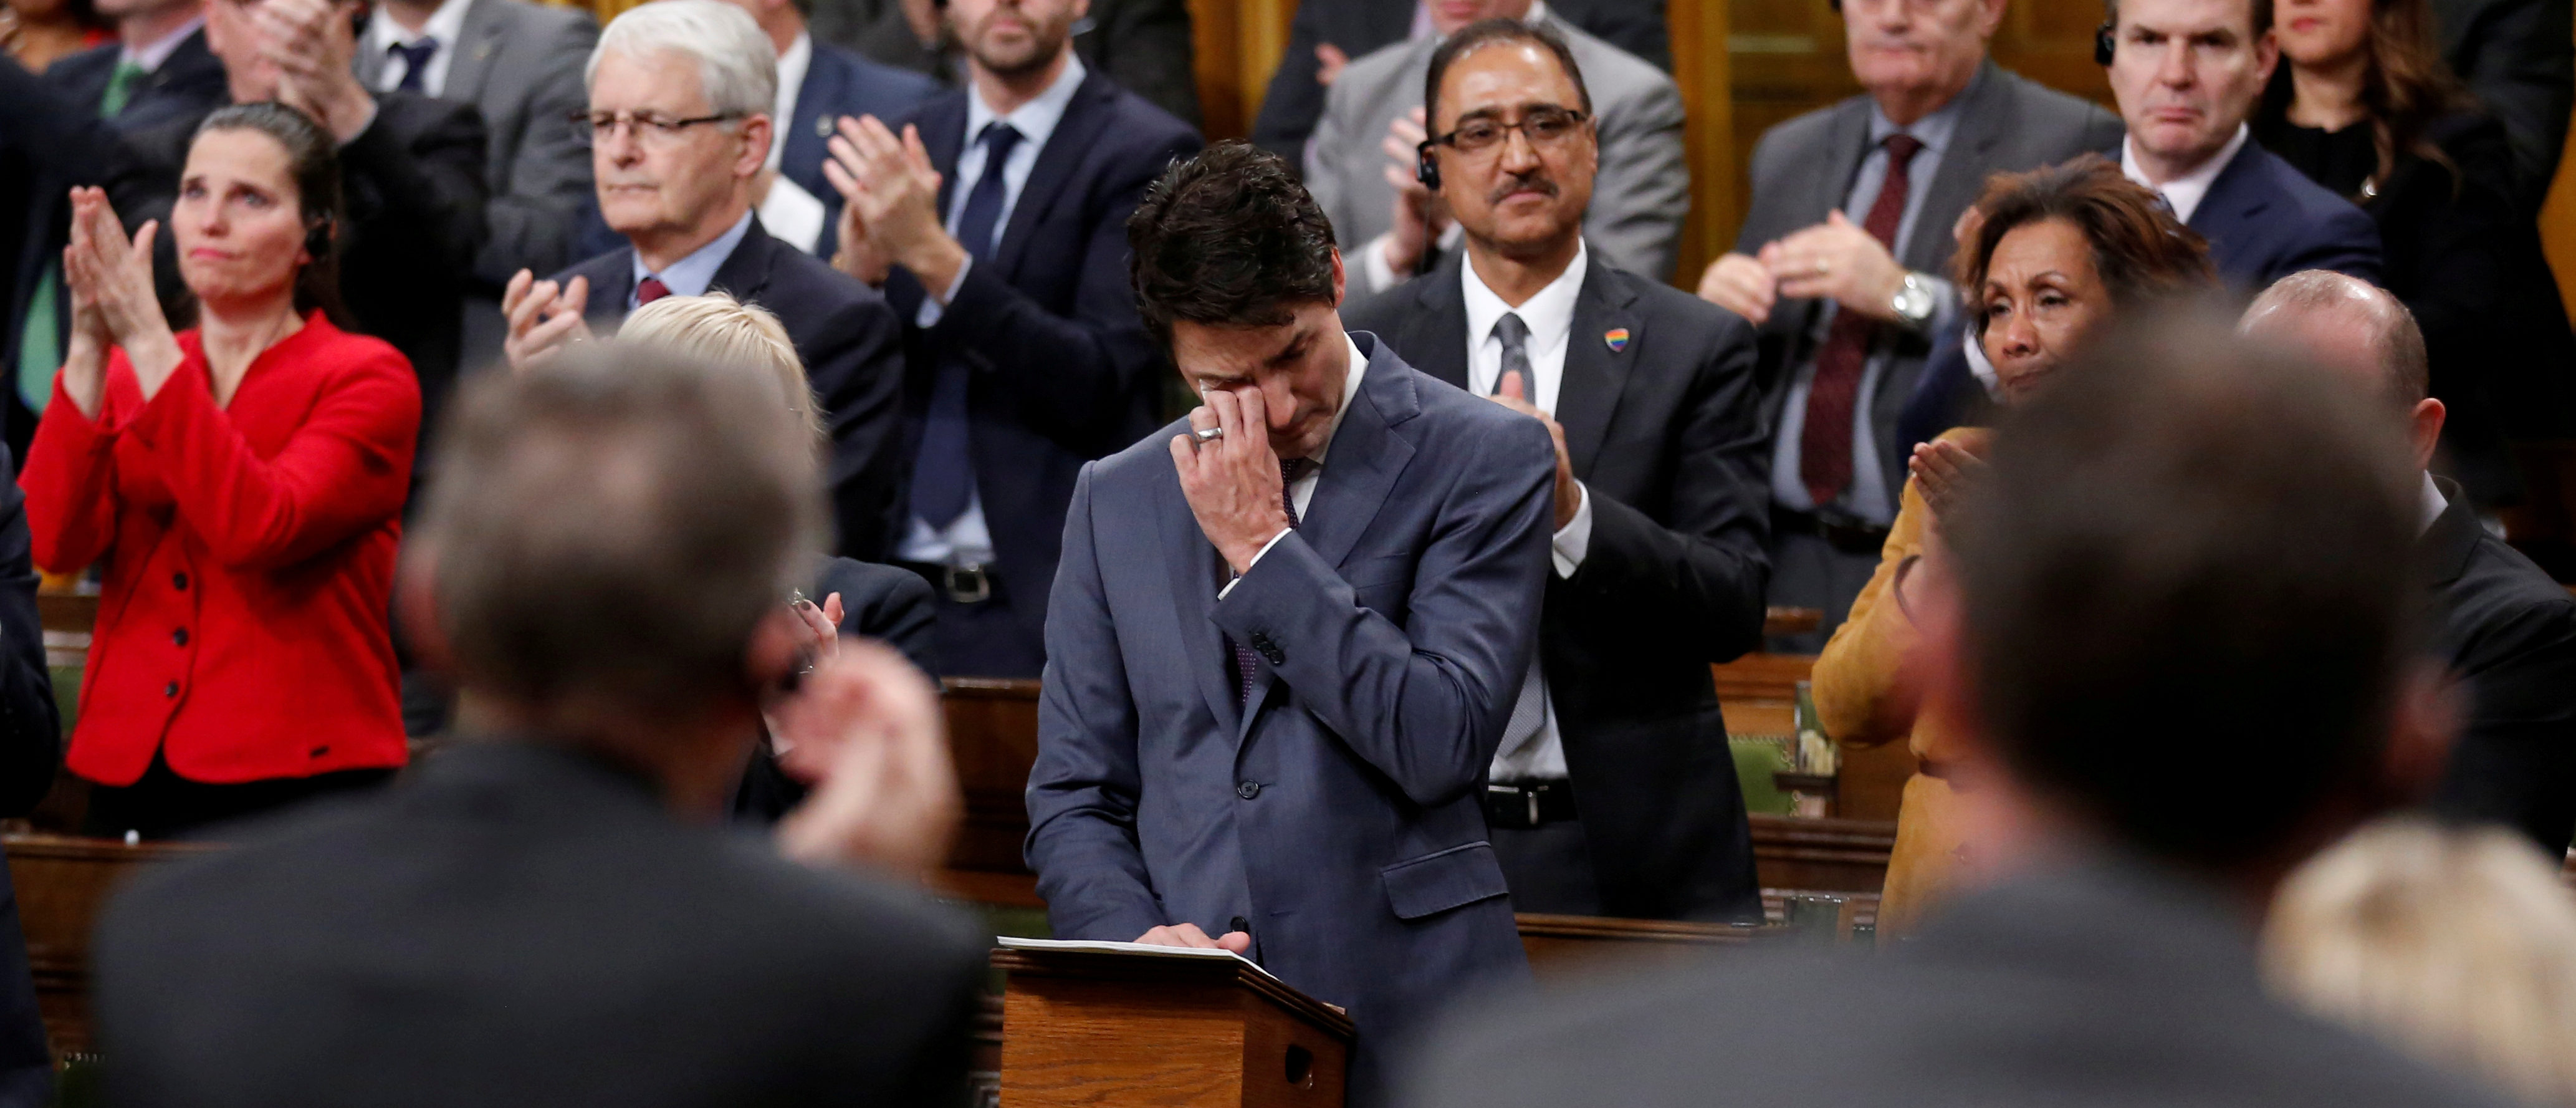 Canada's Prime Minister Justin Trudeau wipes away tears while delivering an apology to members of the LGBT community who were discriminated against by federal legislation and policies, in the House of Commons on Parliament Hill in Ottawa, Ontario, Canada, November 28, 2017. REUTERS/Chris Wattie